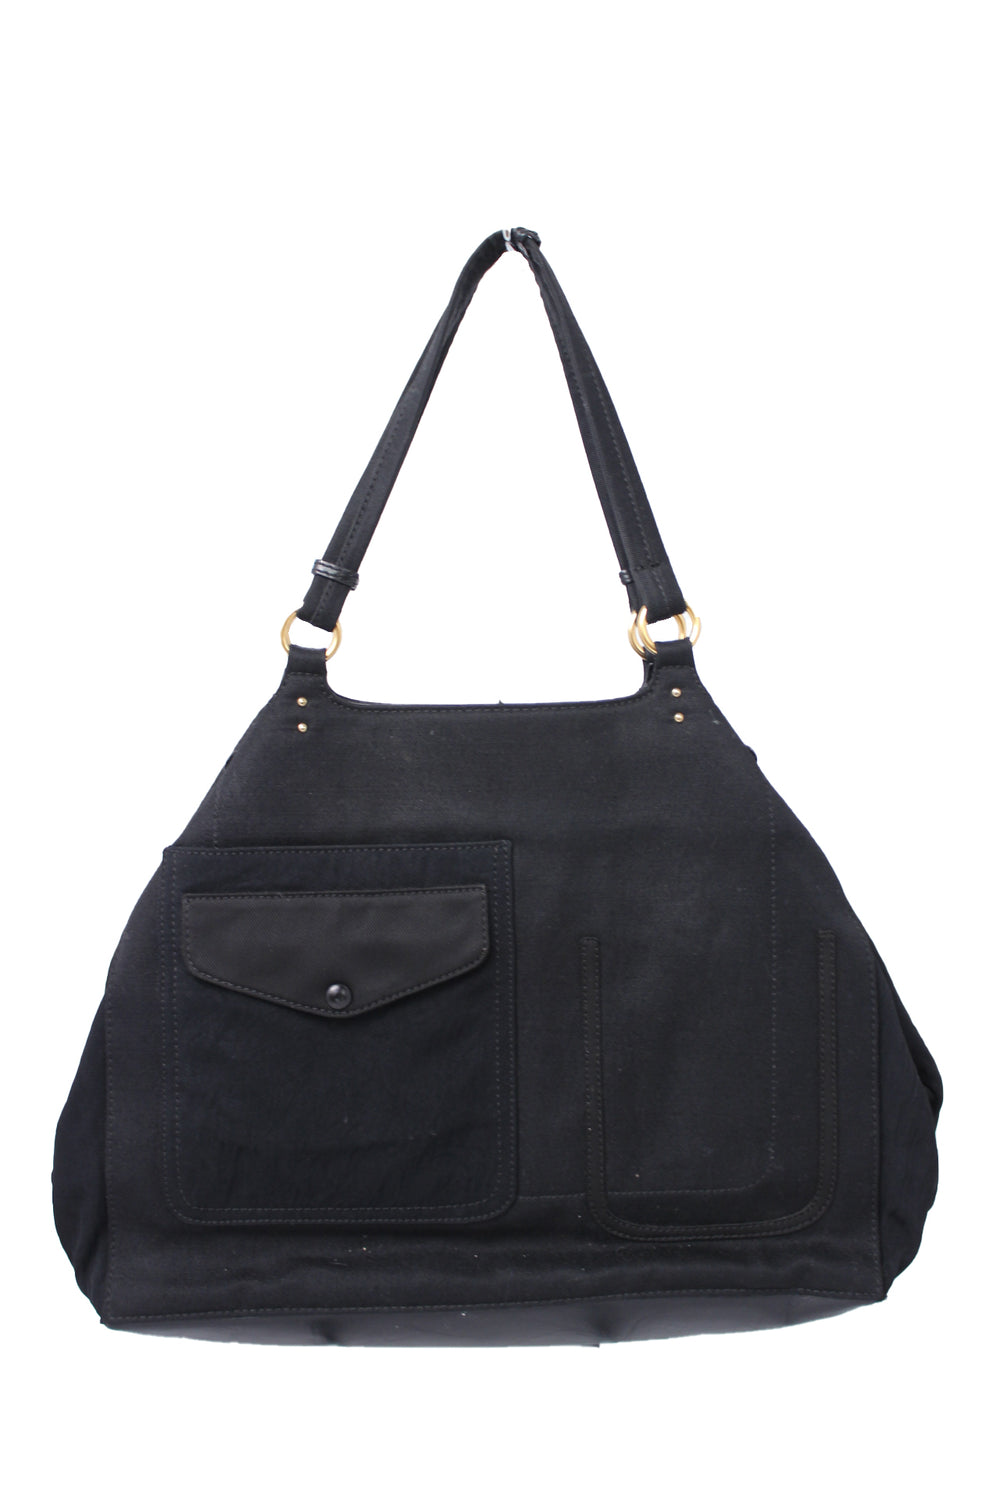 marc jacobs older edition black handbags.